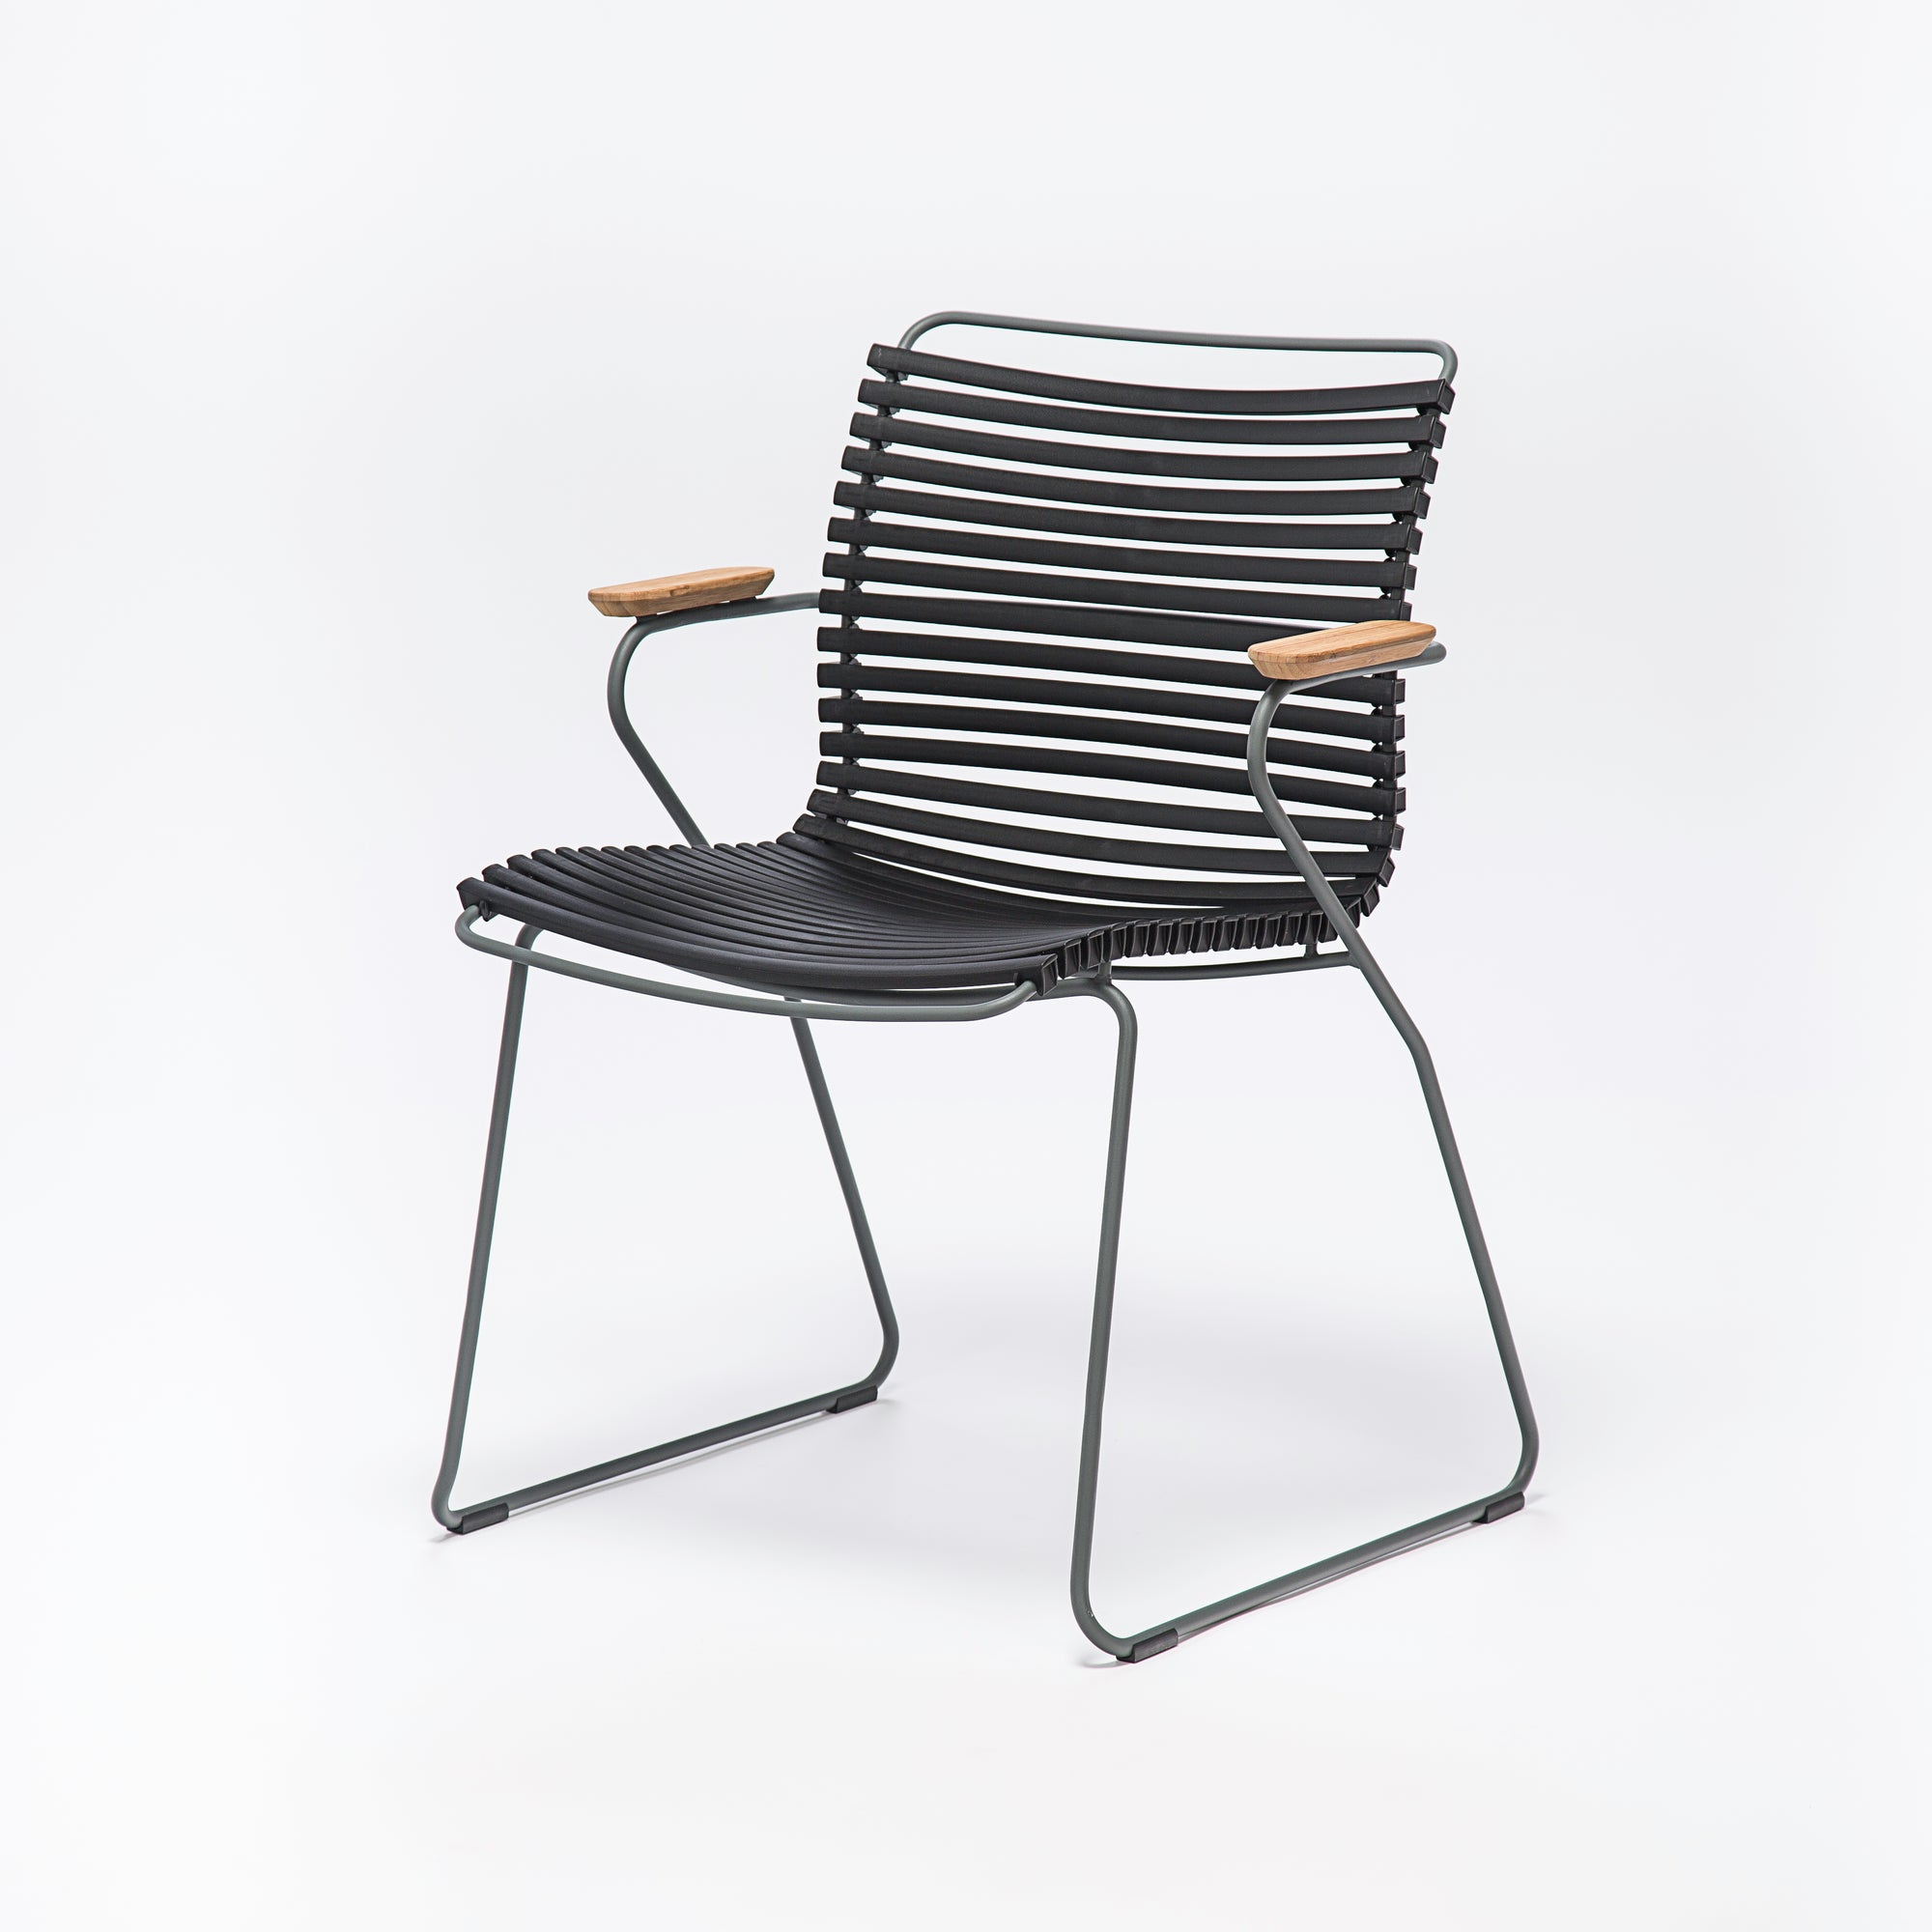 DANISH DESIGN CLICK Outdoor Dining Chair